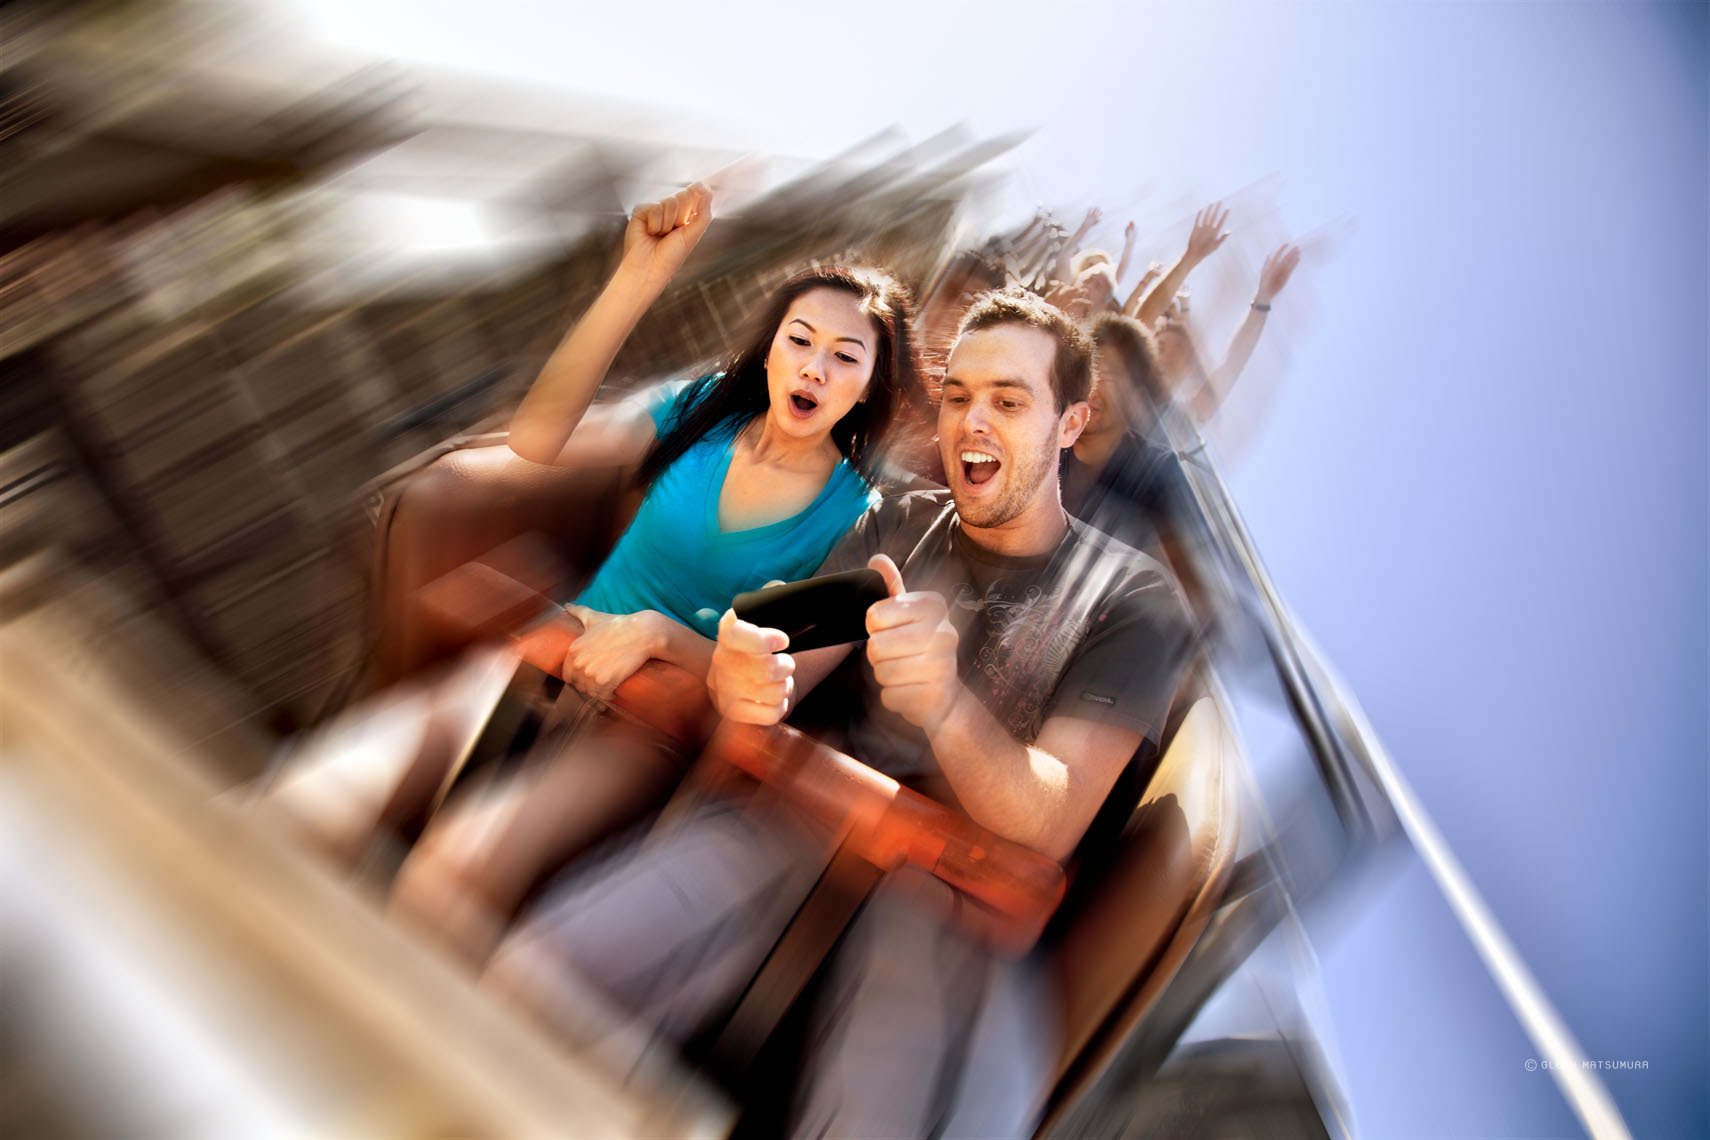 Roller coaster ad image for nVidia